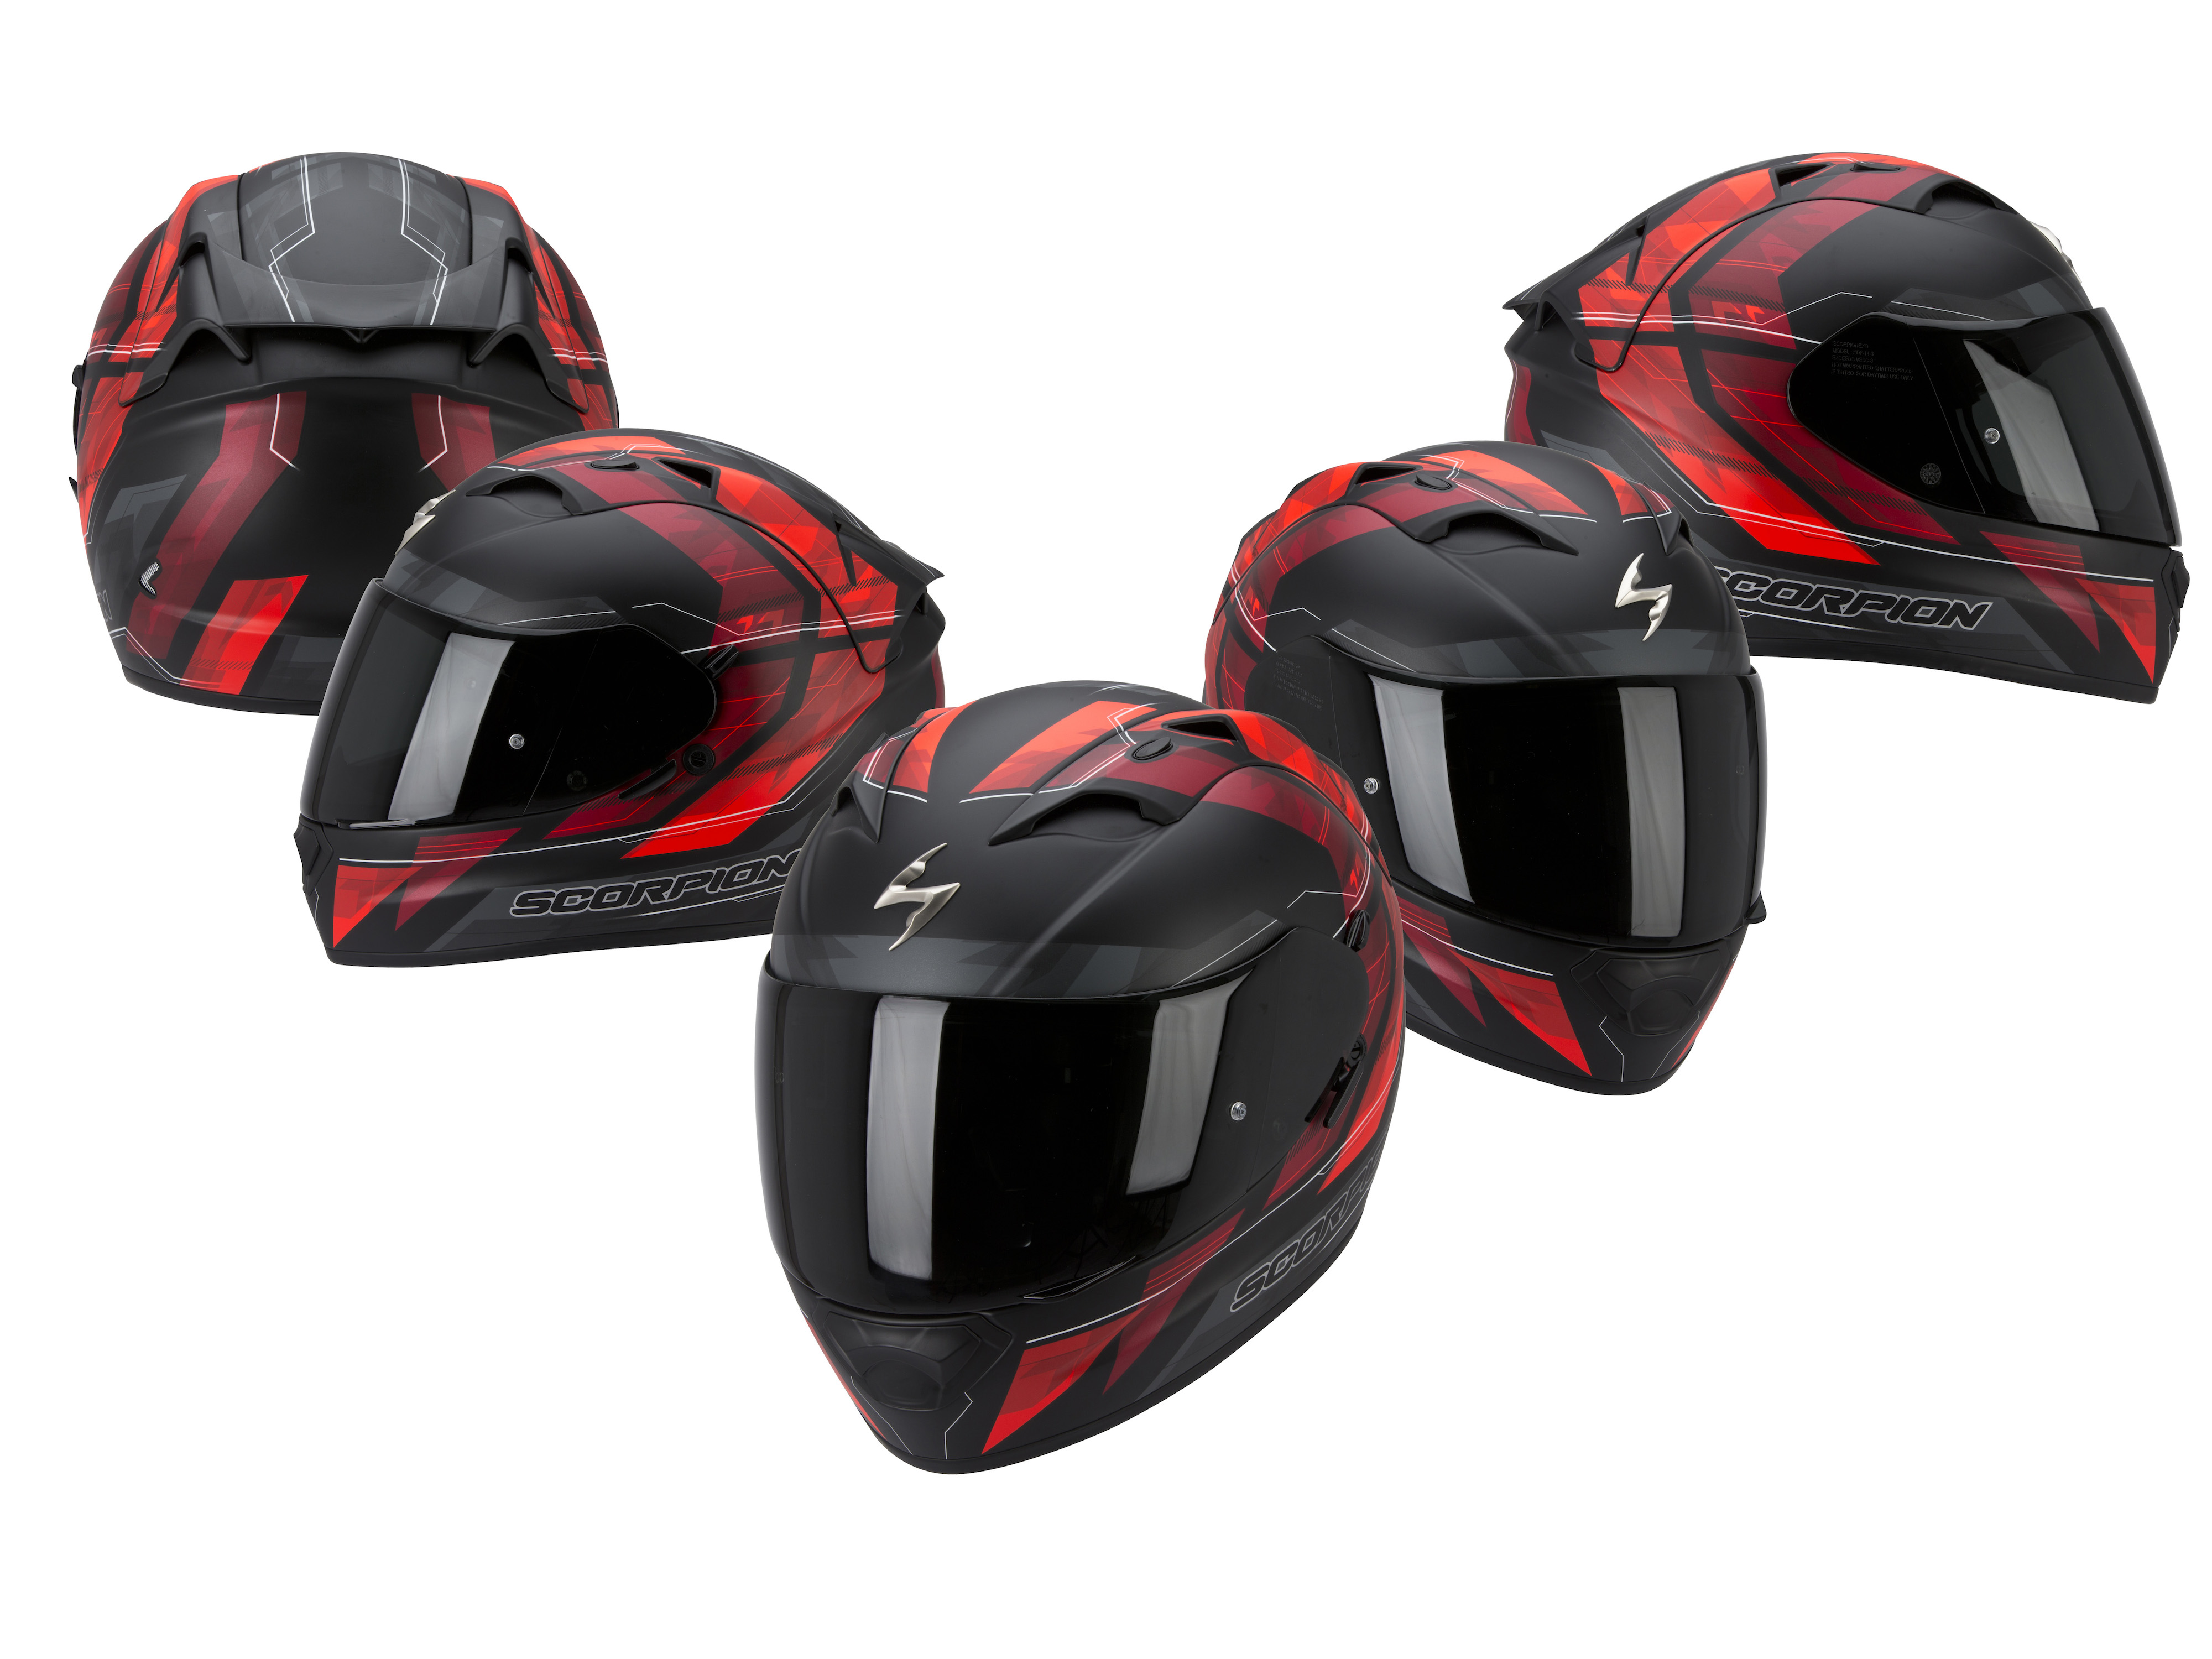 casque scorpion exo 1200 air hornet le haut de gamme touring le site suisse de. Black Bedroom Furniture Sets. Home Design Ideas